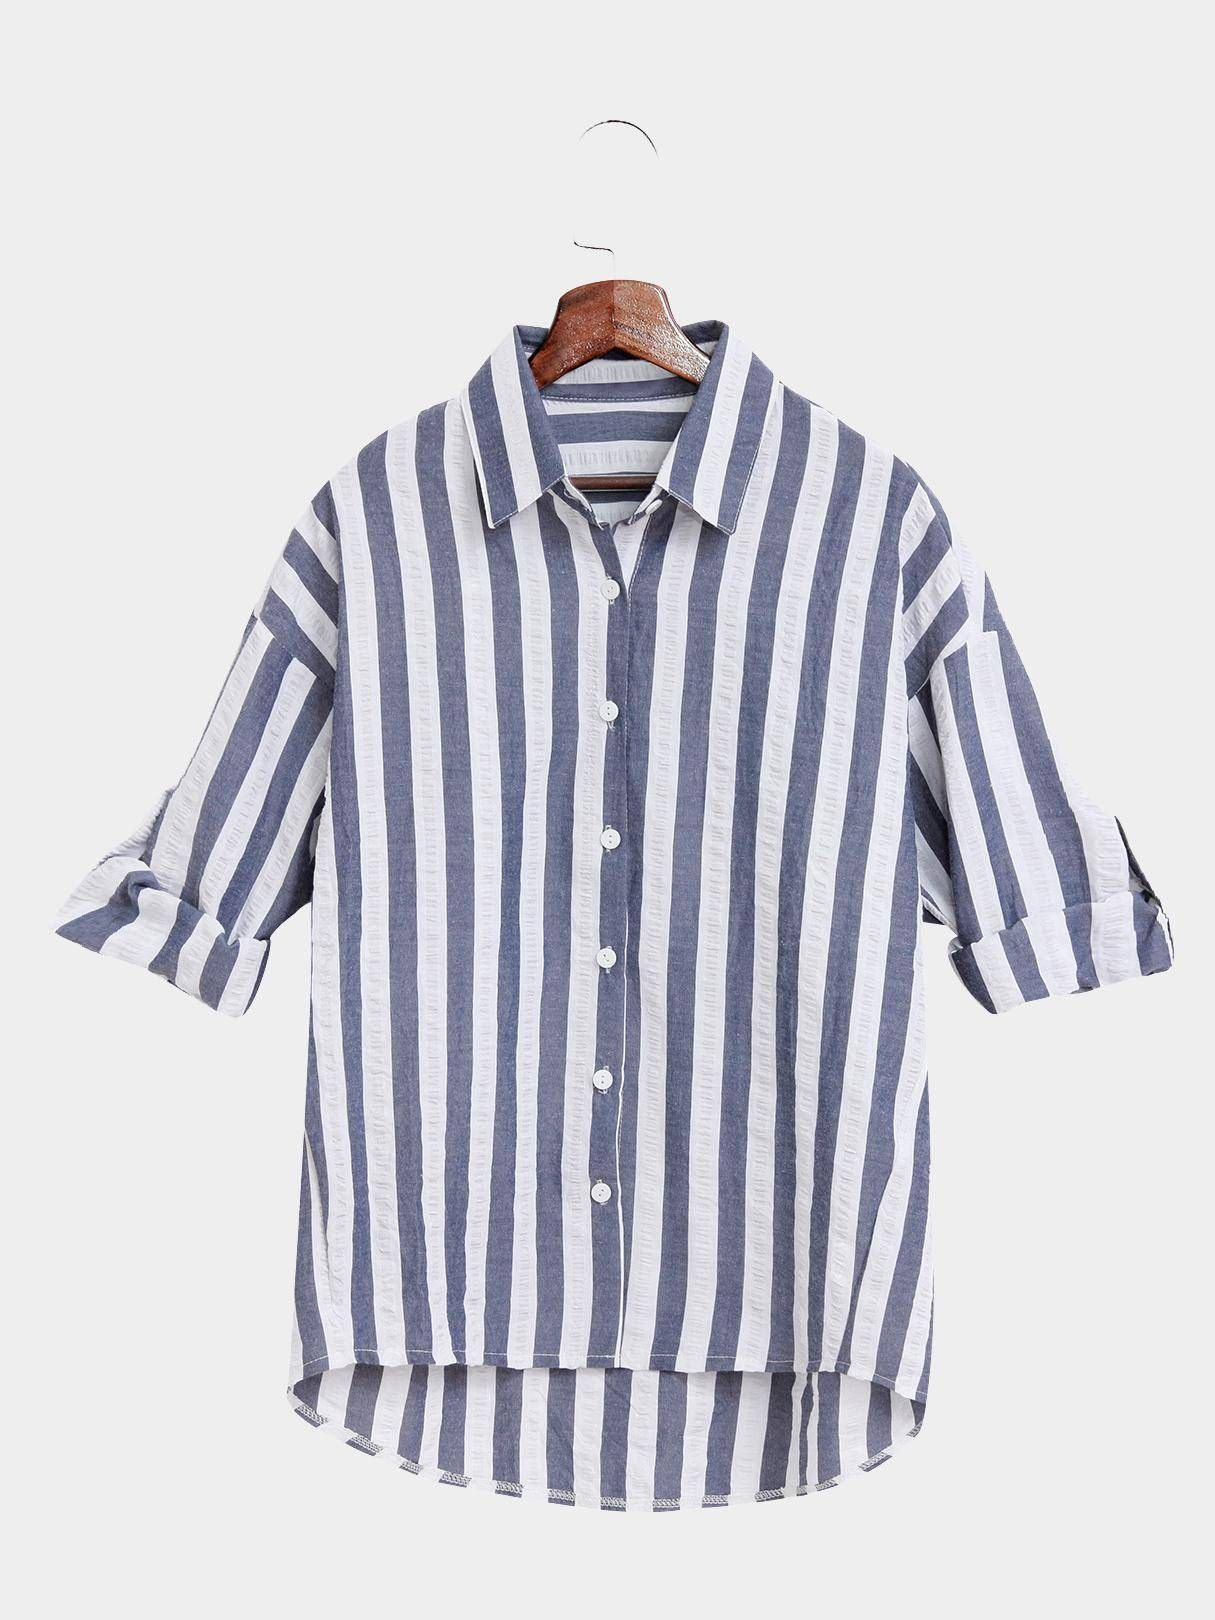 c8662f2ce8 Casual Dark Blue And White Stripe Pattern Shirt | Room for more ...